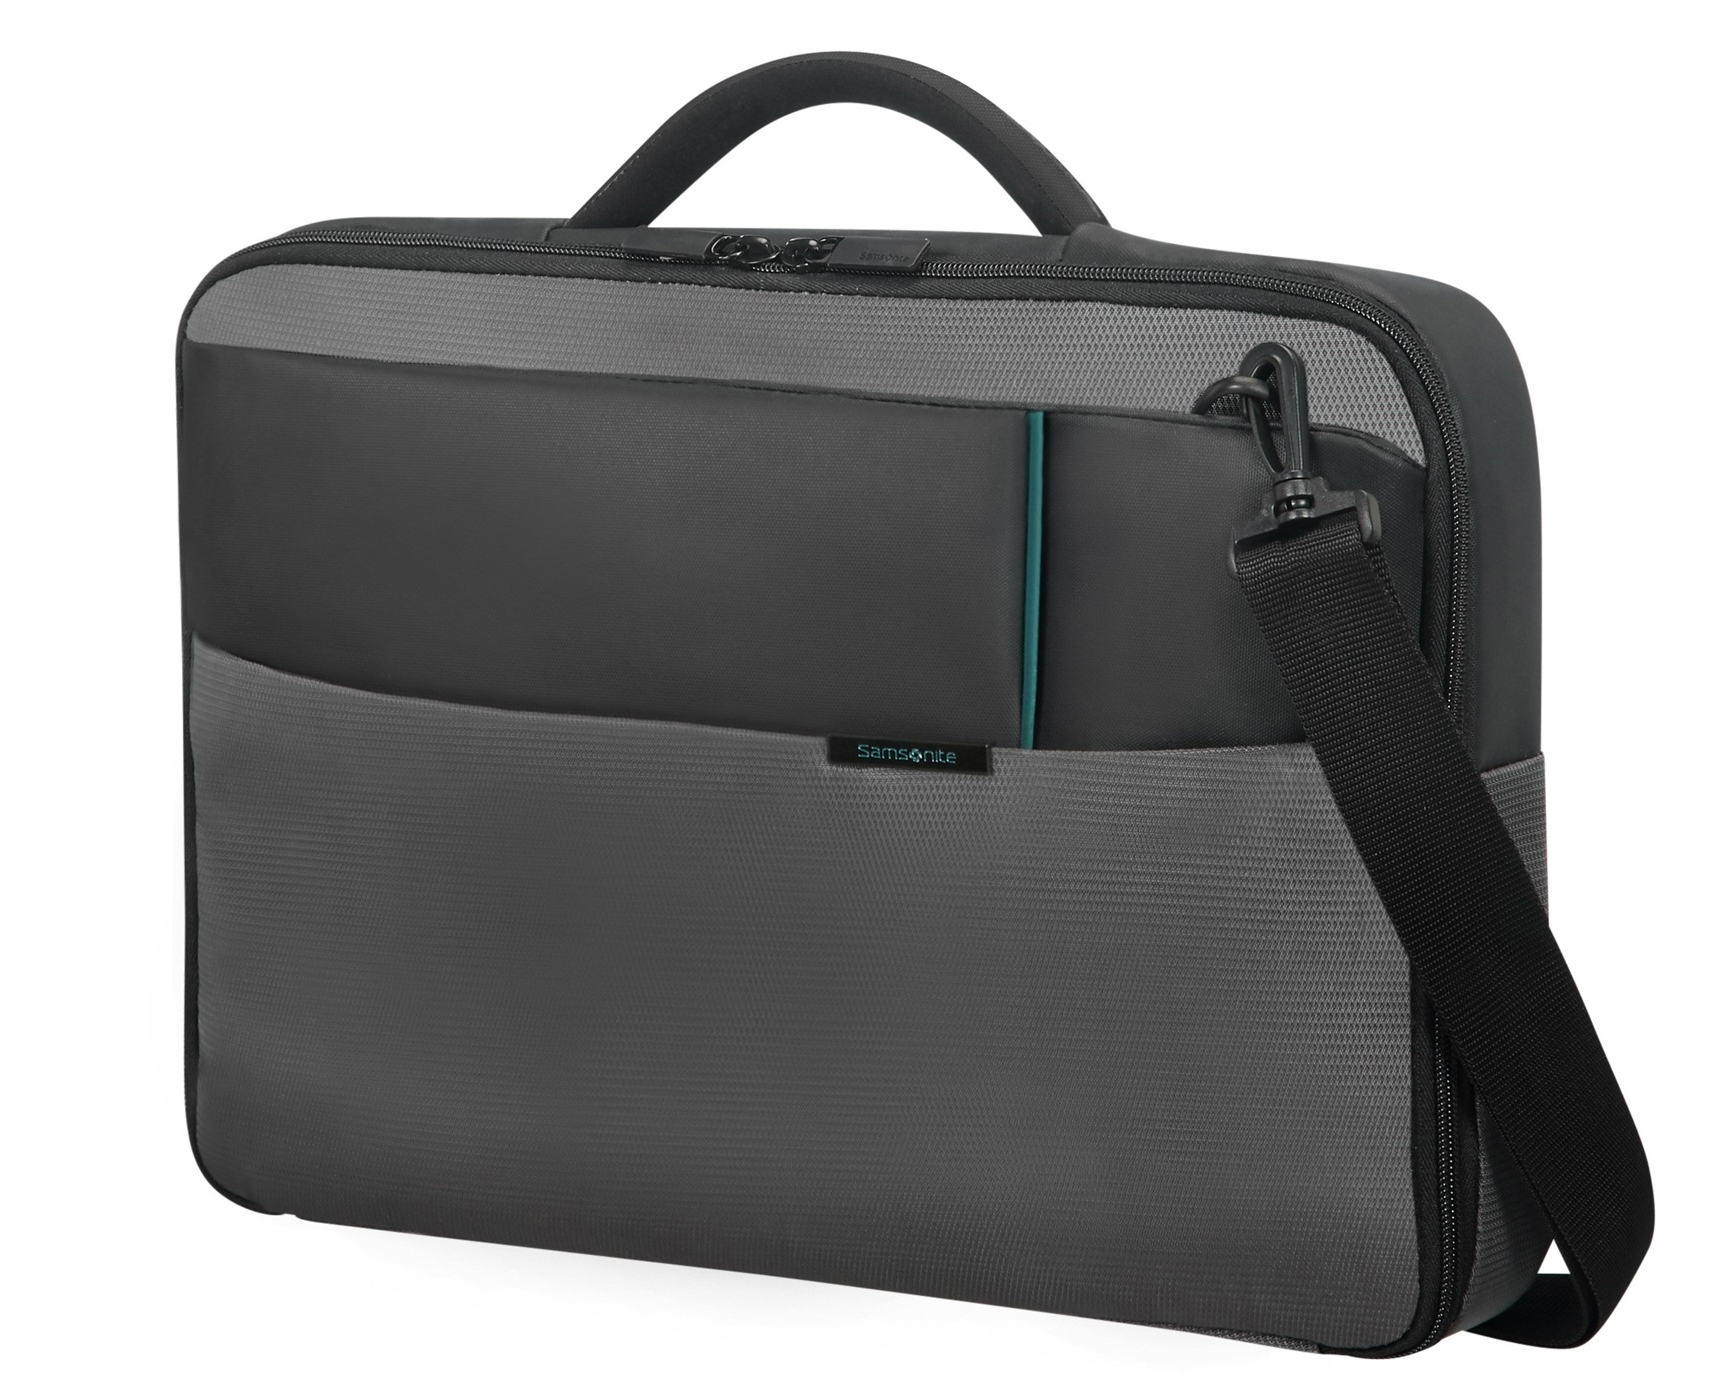 SAMSONITE - BORSE NOTEBOOK - 5414847698347